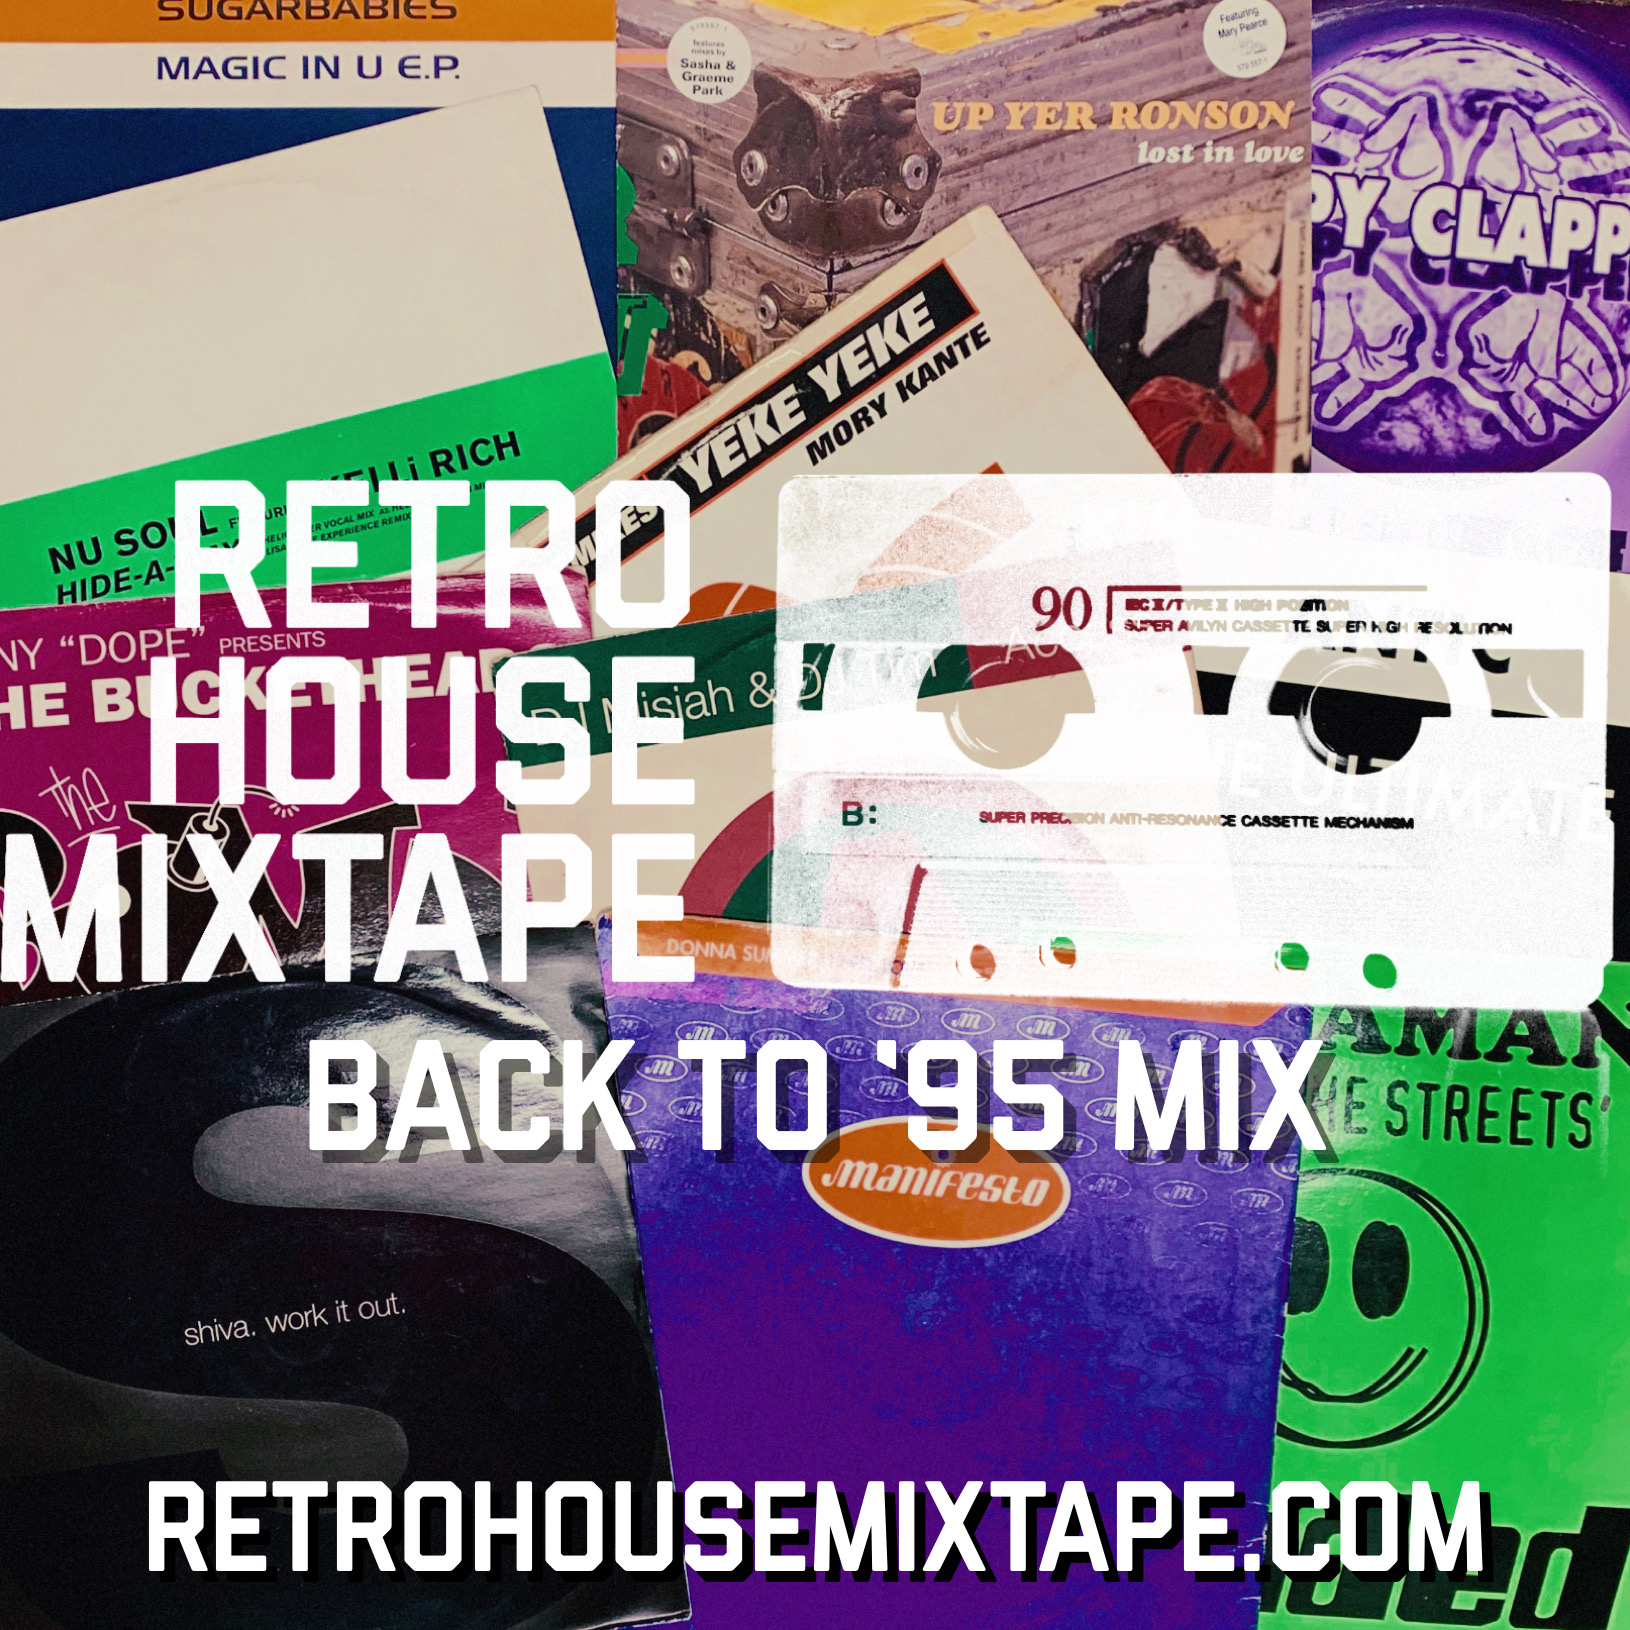 Back to '95 Mix